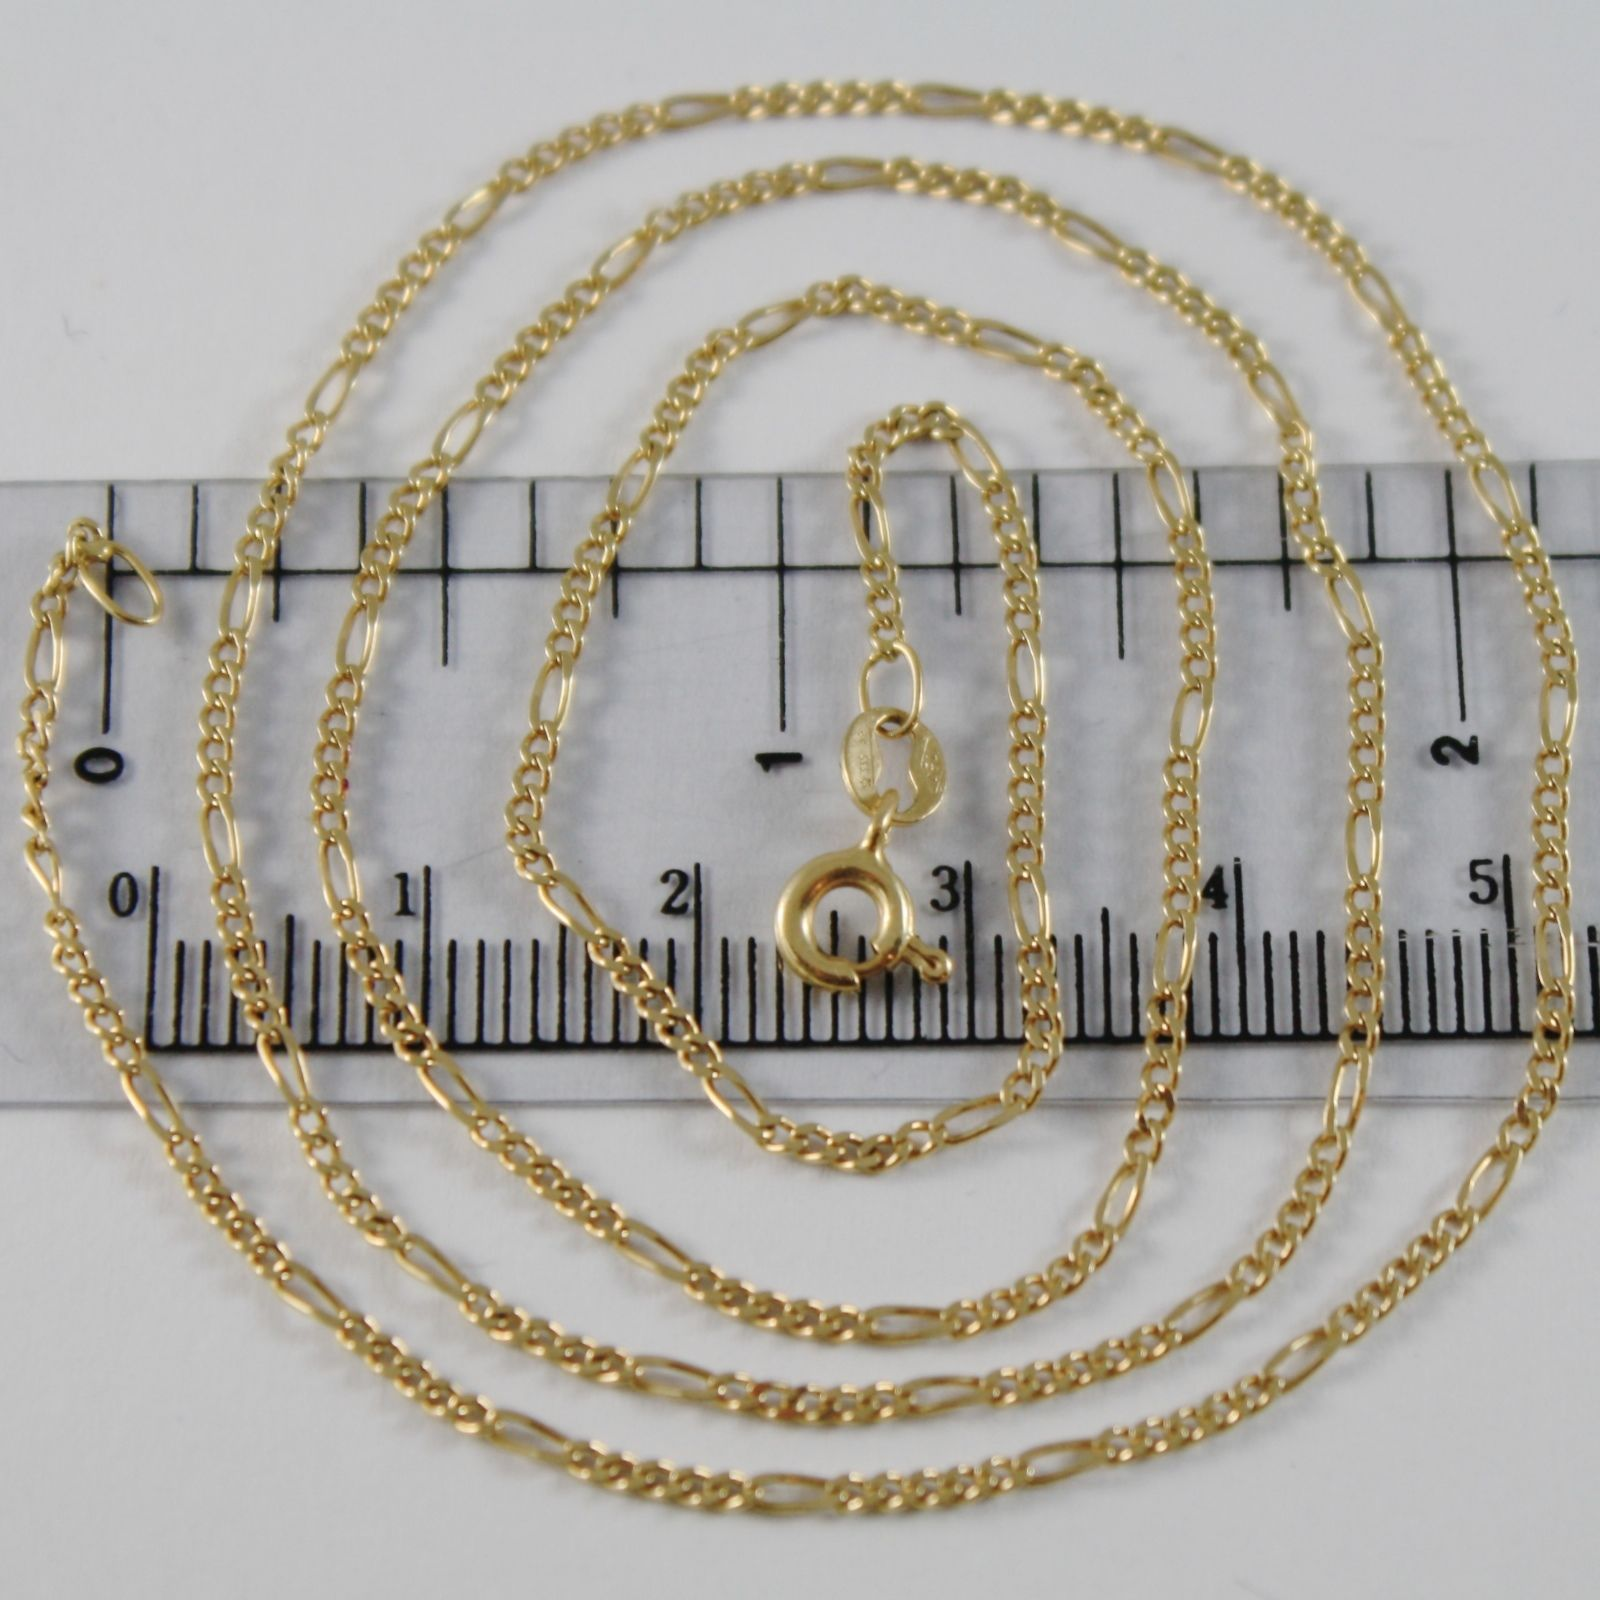 18K YELLOW GOLD CHAIN 1.5 MM FLAT CLASSIC OVAL LINK 21.20 INCHES MADE IN ITALY